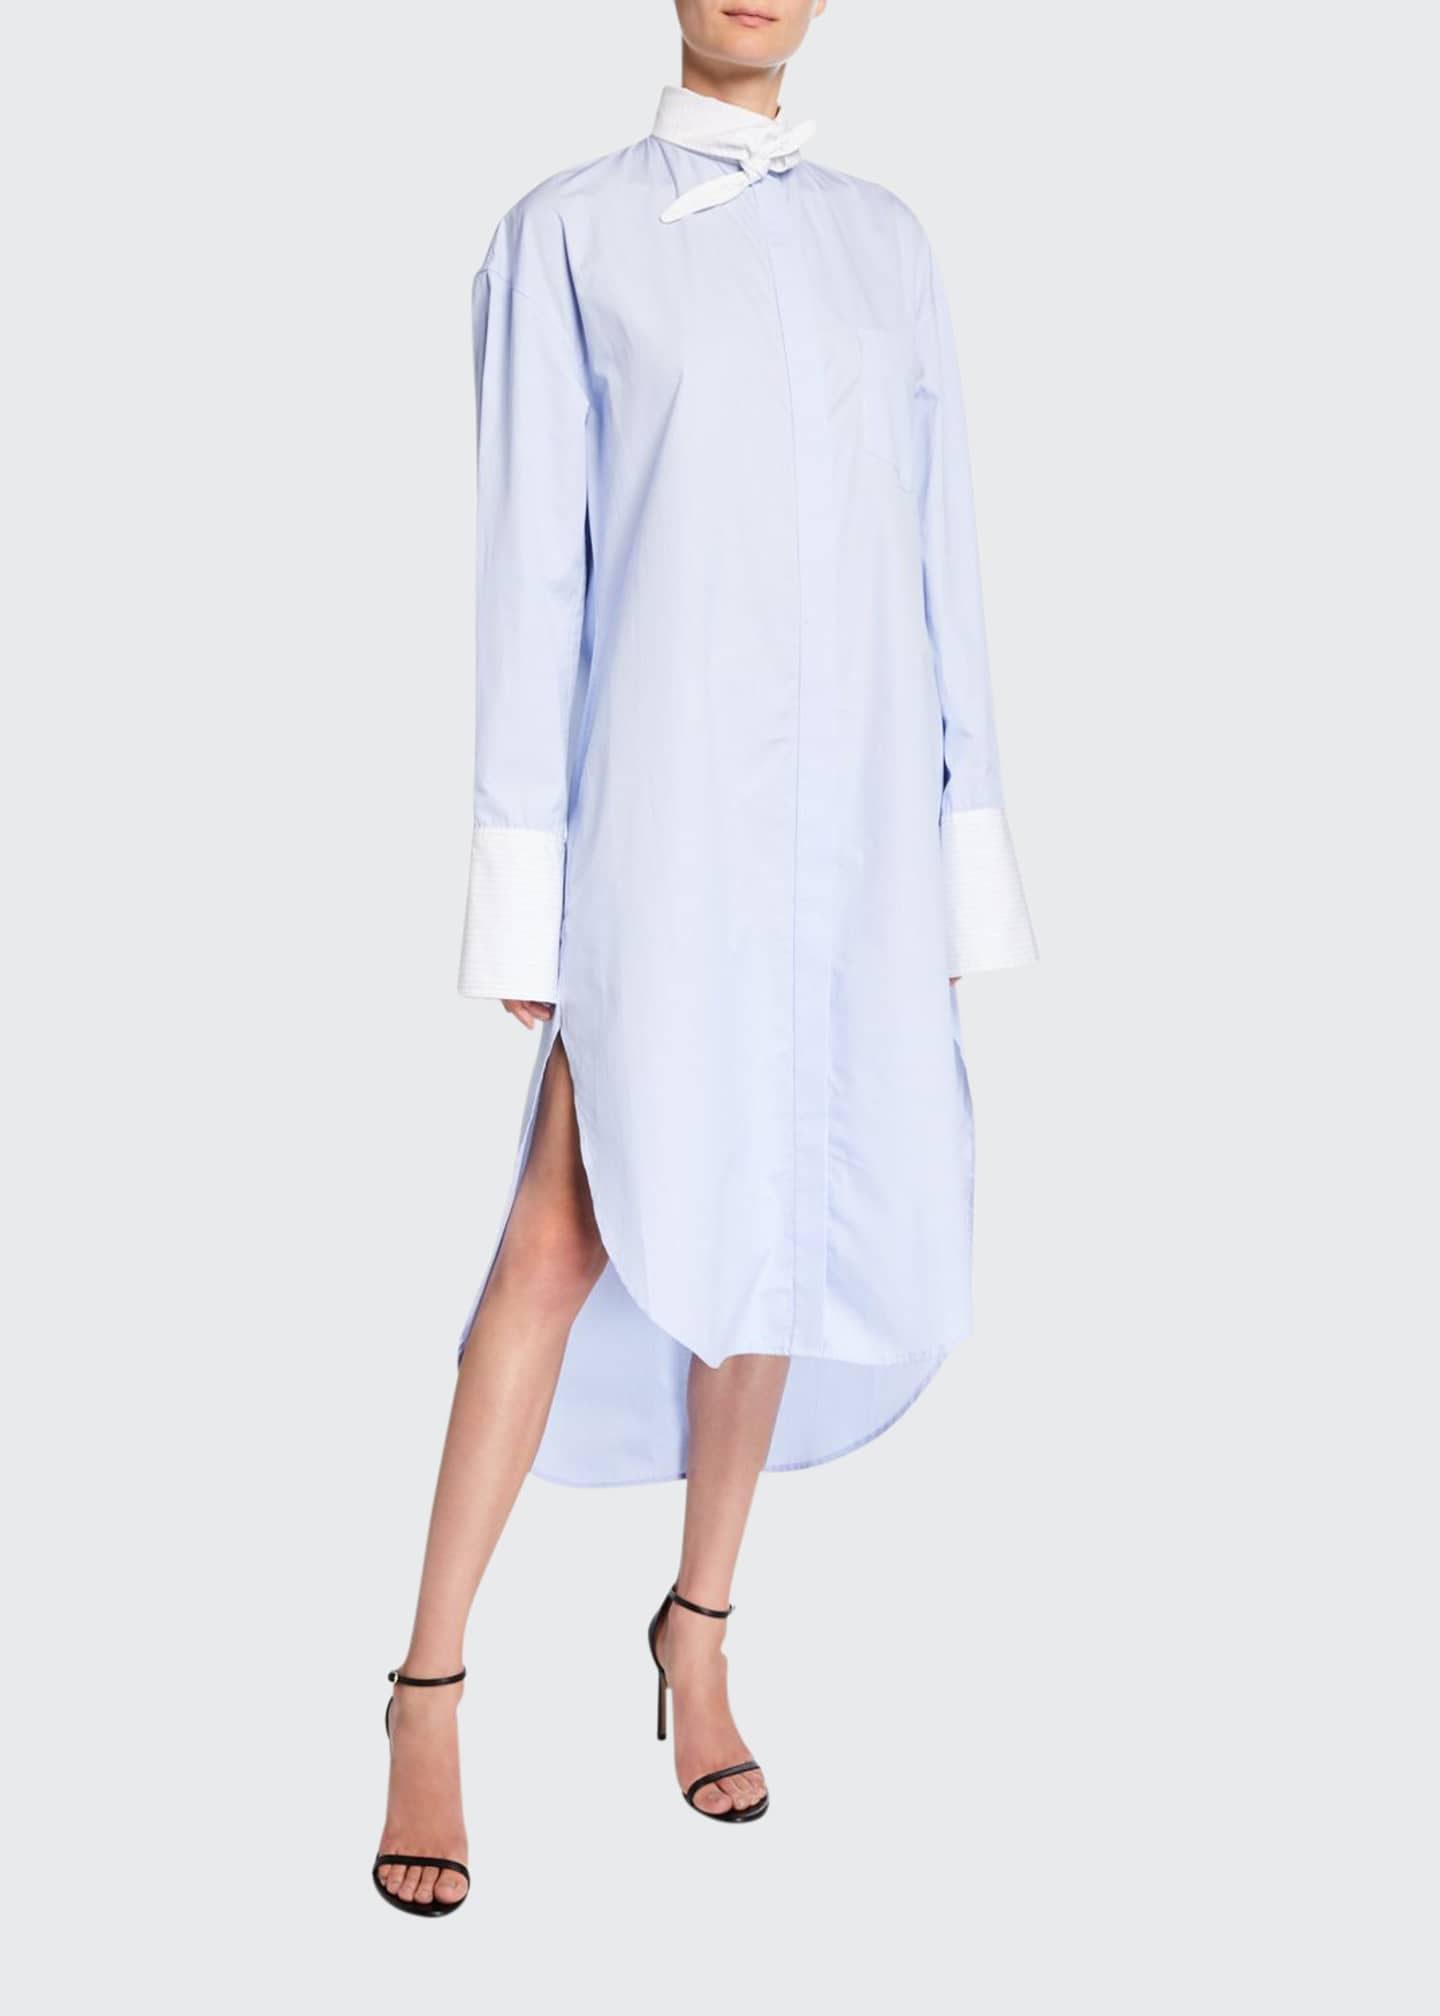 Deveaux New York Button-Down Tie-Collar Shirtdress with Mini